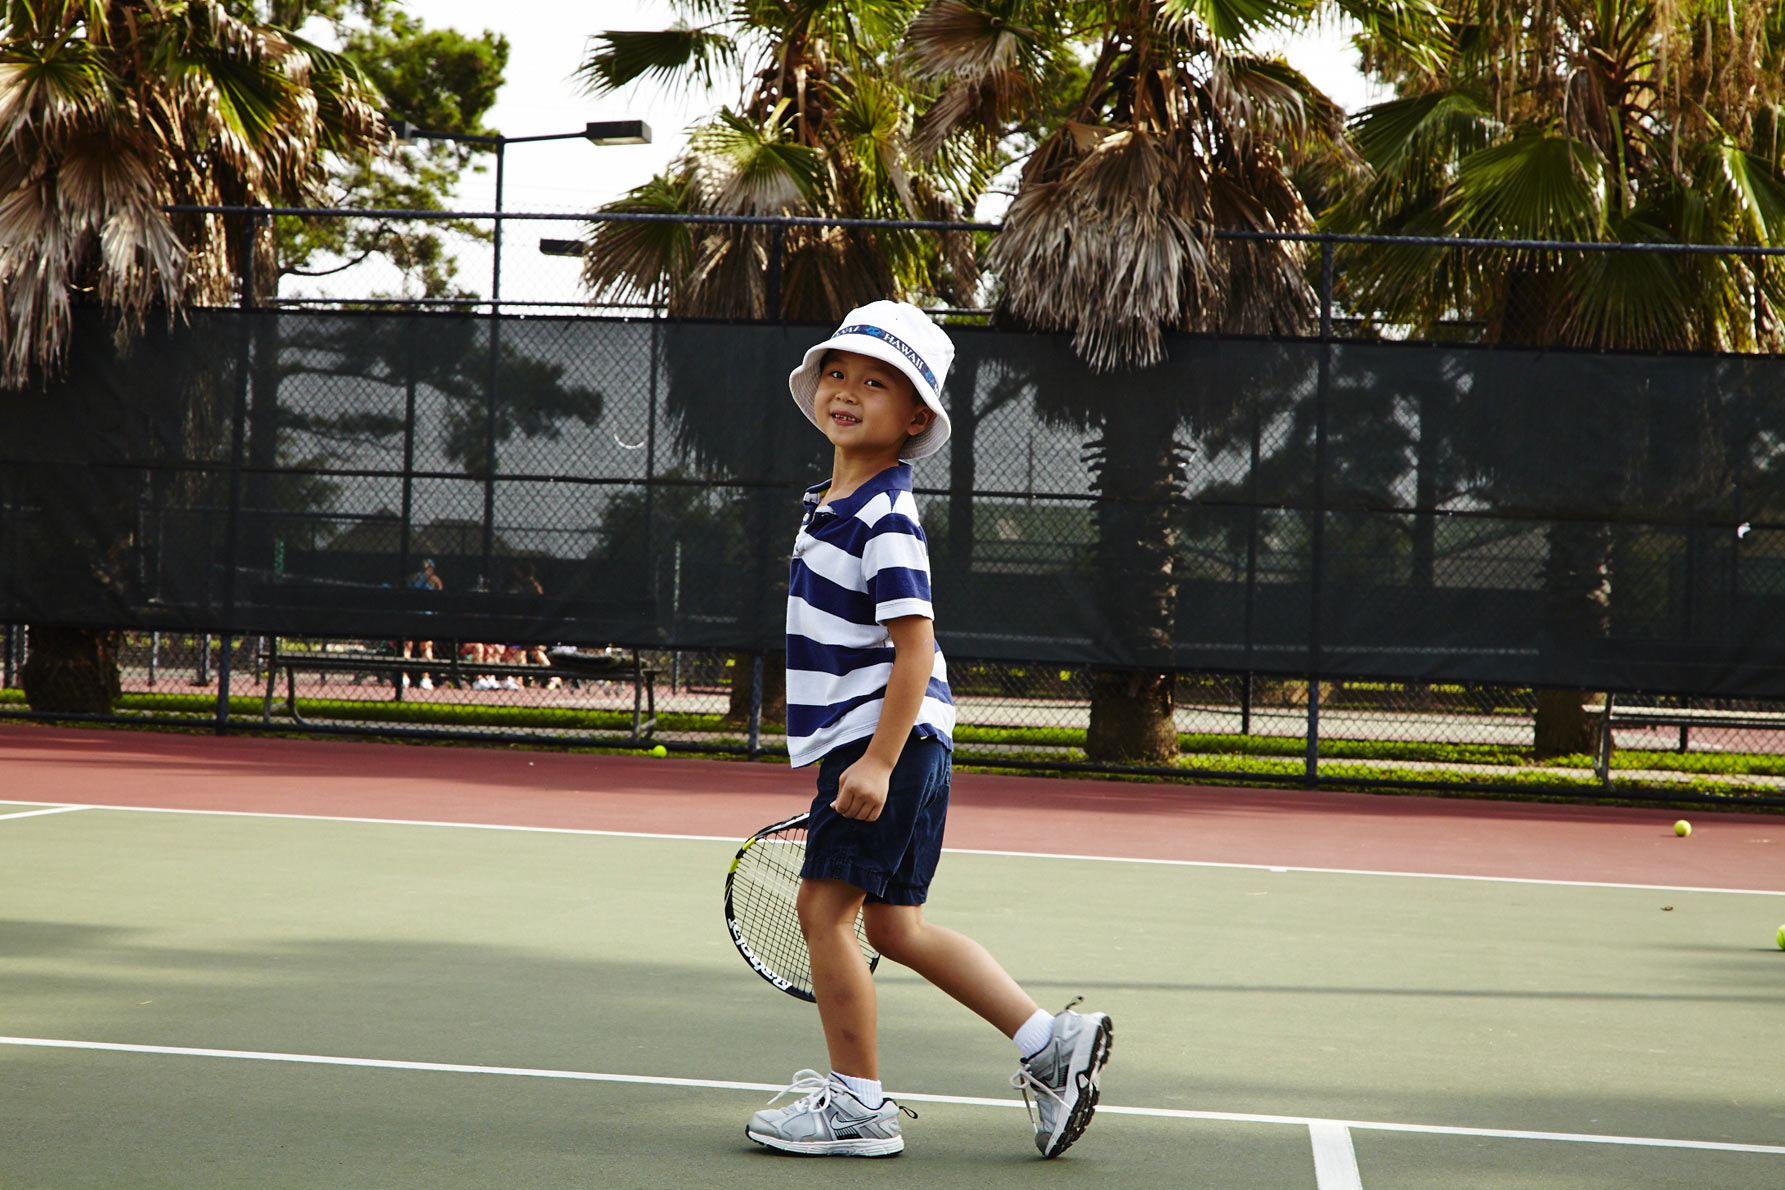 Falcon-Point_Tennis-Kids_04